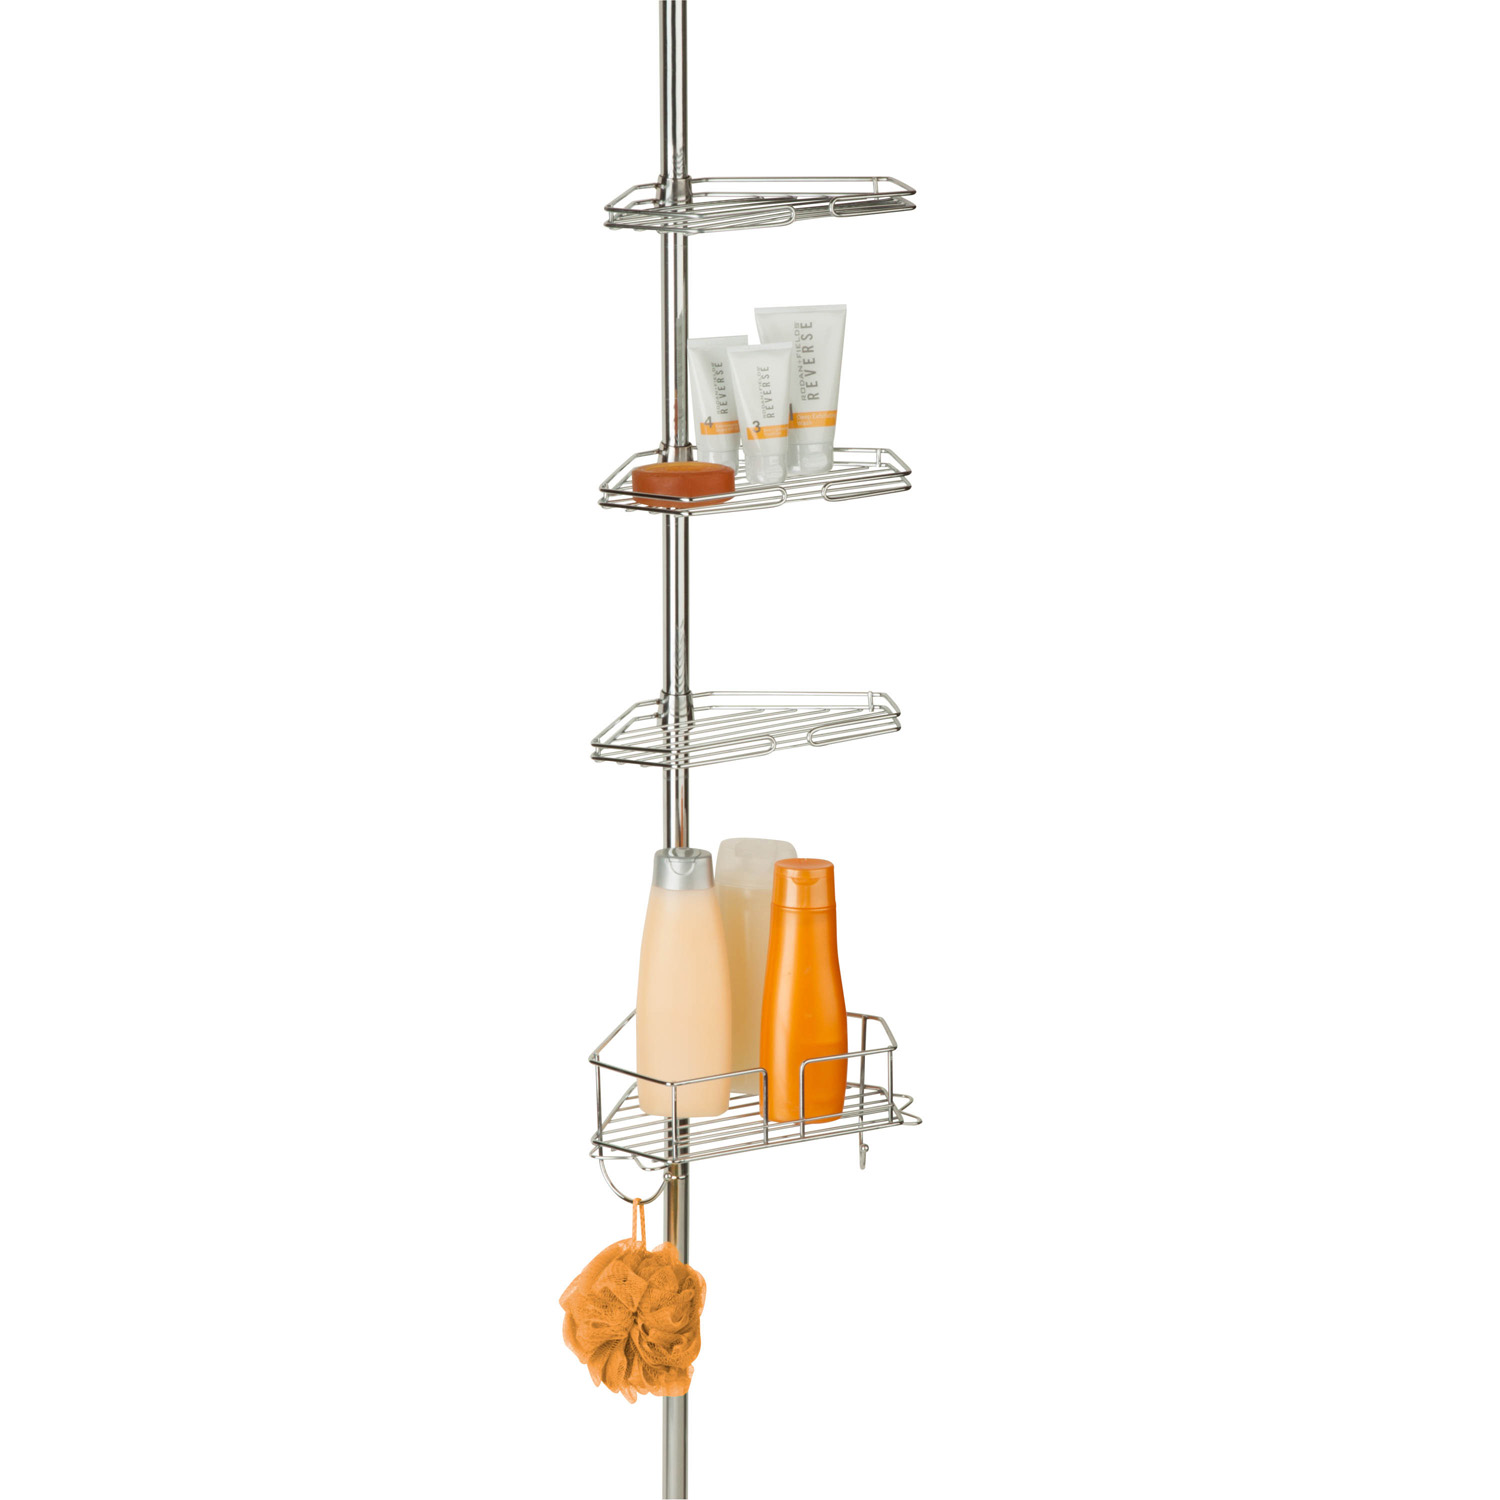 Honey Can Do Chrome Corner Tension Rod Shower Caddy by Honey Can Do